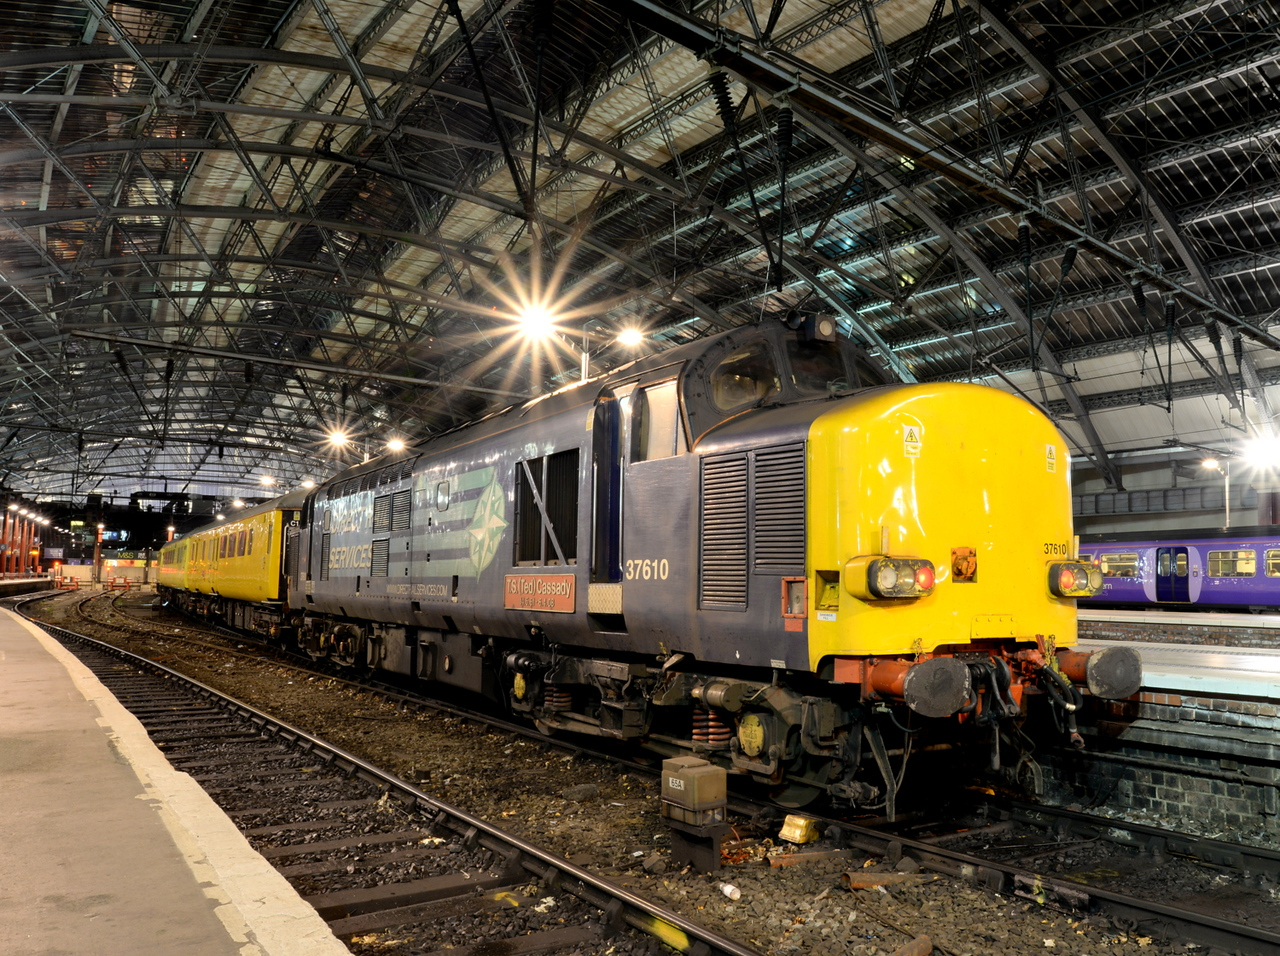 37610, Liverpool Lime Street. 20/10/15.